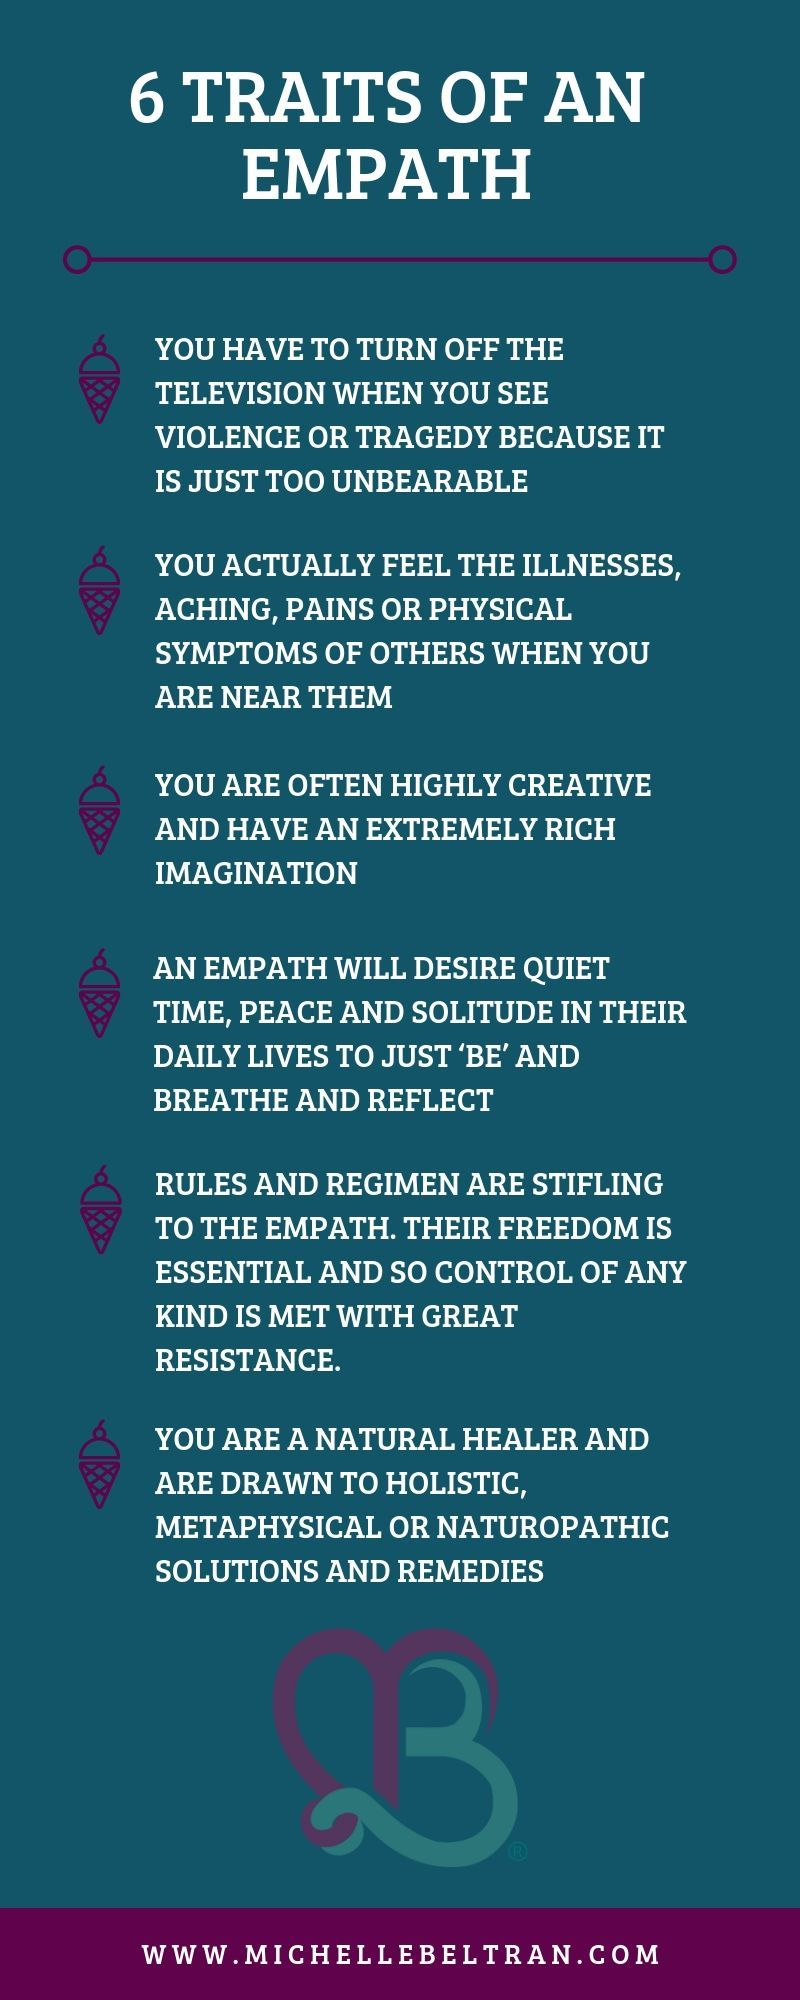 How to use your psychic empathic ability empath traits